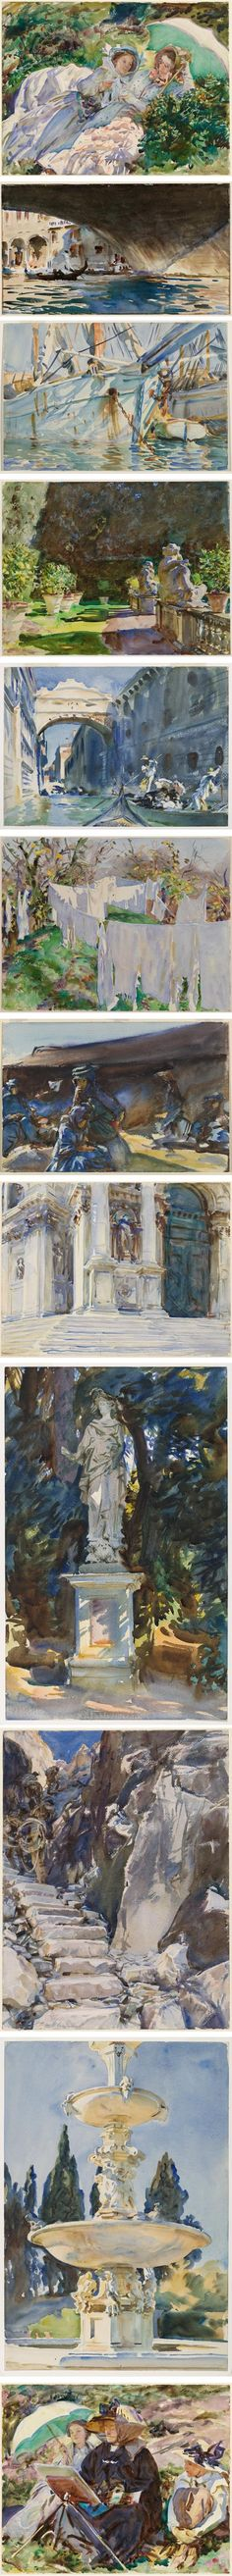 John Singer Sargent watercolors at the Brooklyn Museum